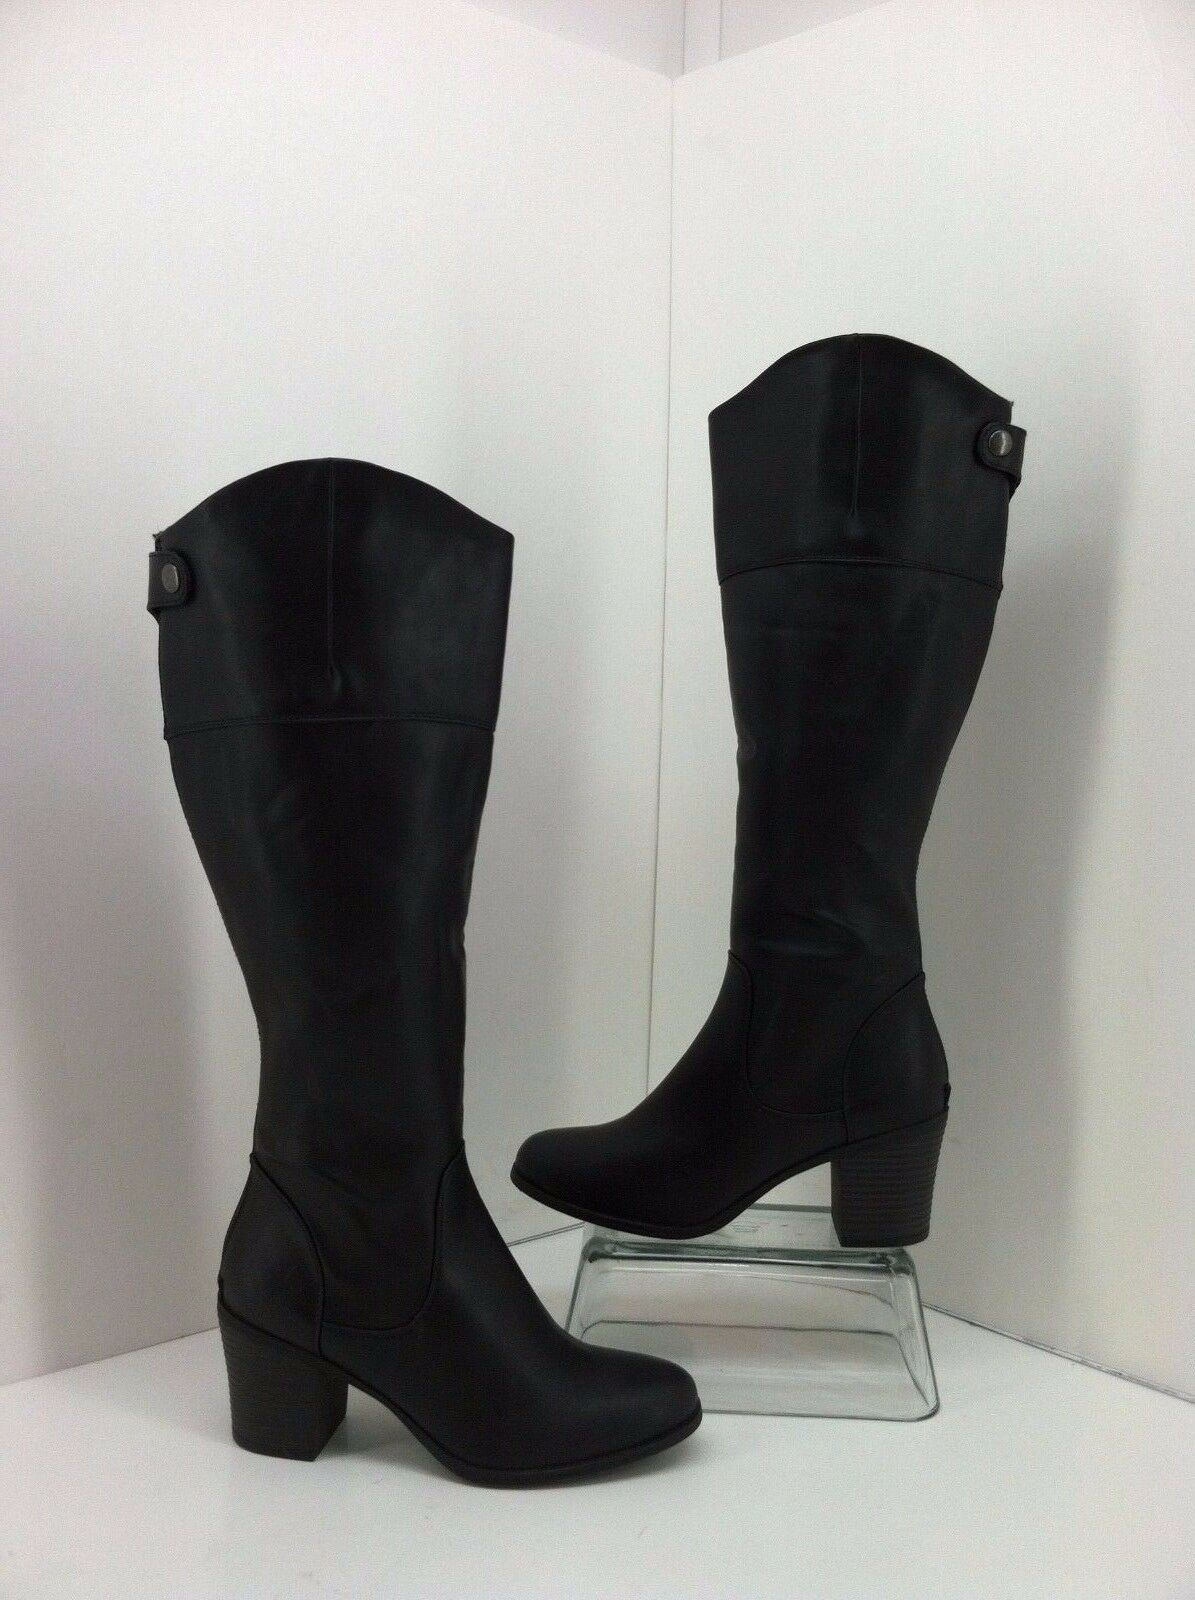 White Mountain Silo Black Tall Back Zipper Boots Size 5.5 M